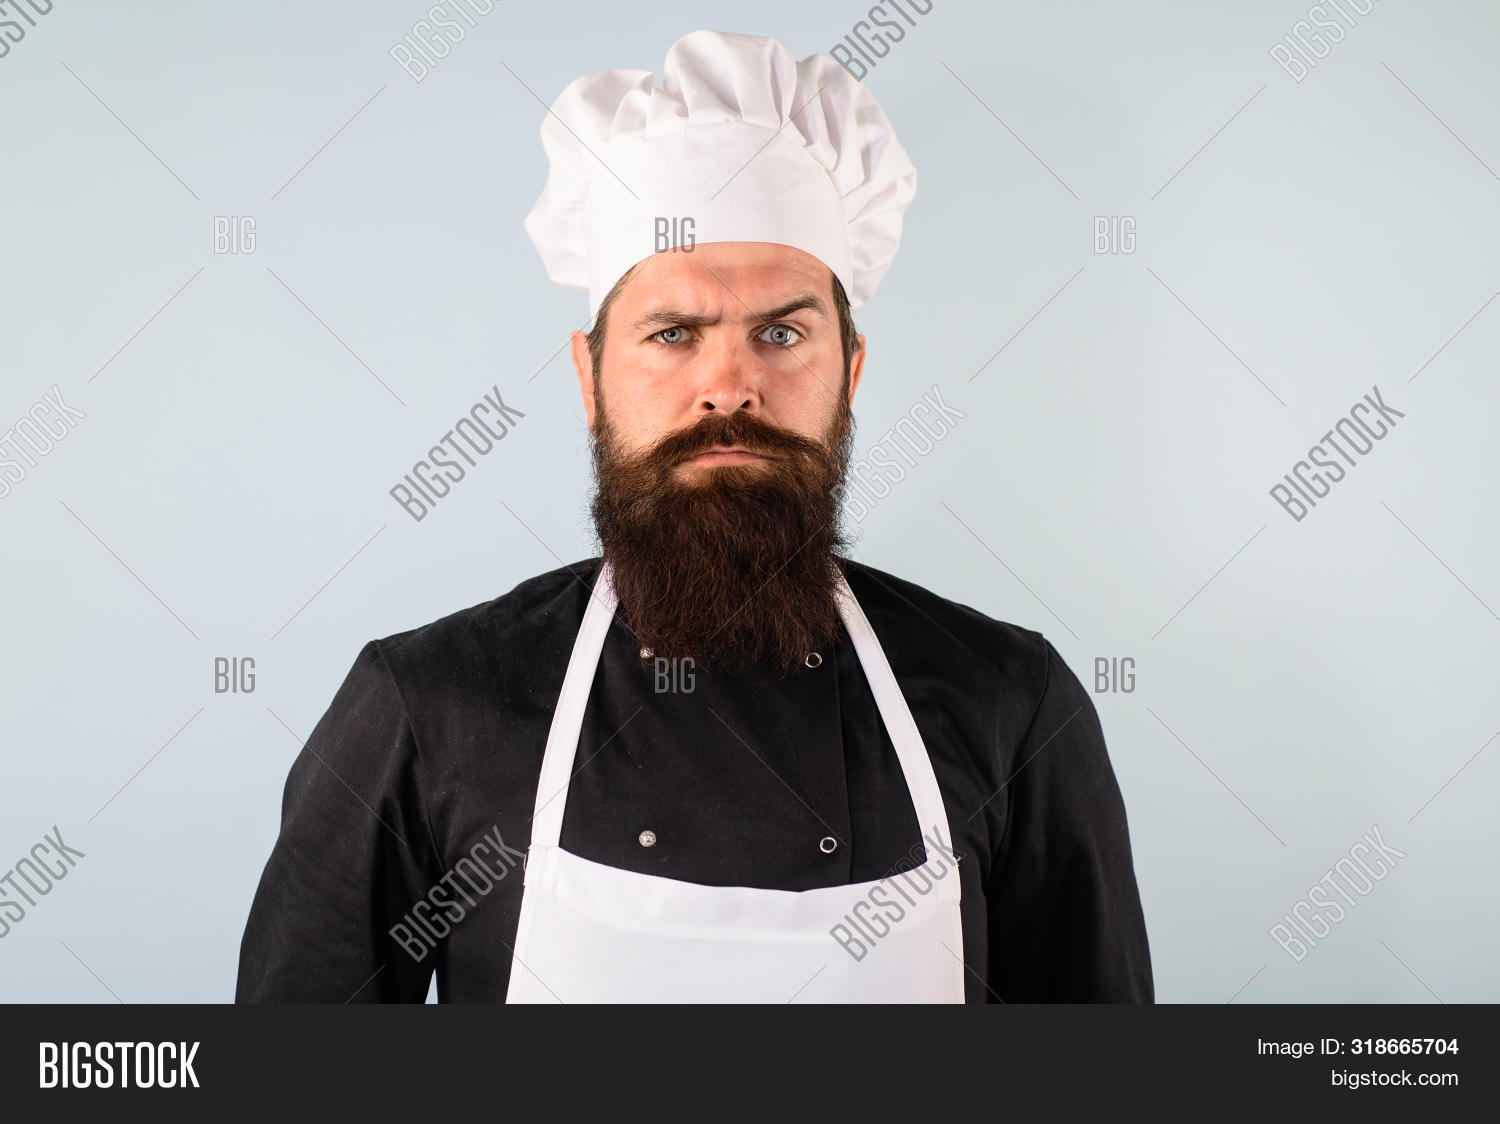 Bearded Chef In Cook Hat. Chief Man In Uniform. Professional Chef Man. Male Chef, Cook Or Baker In W